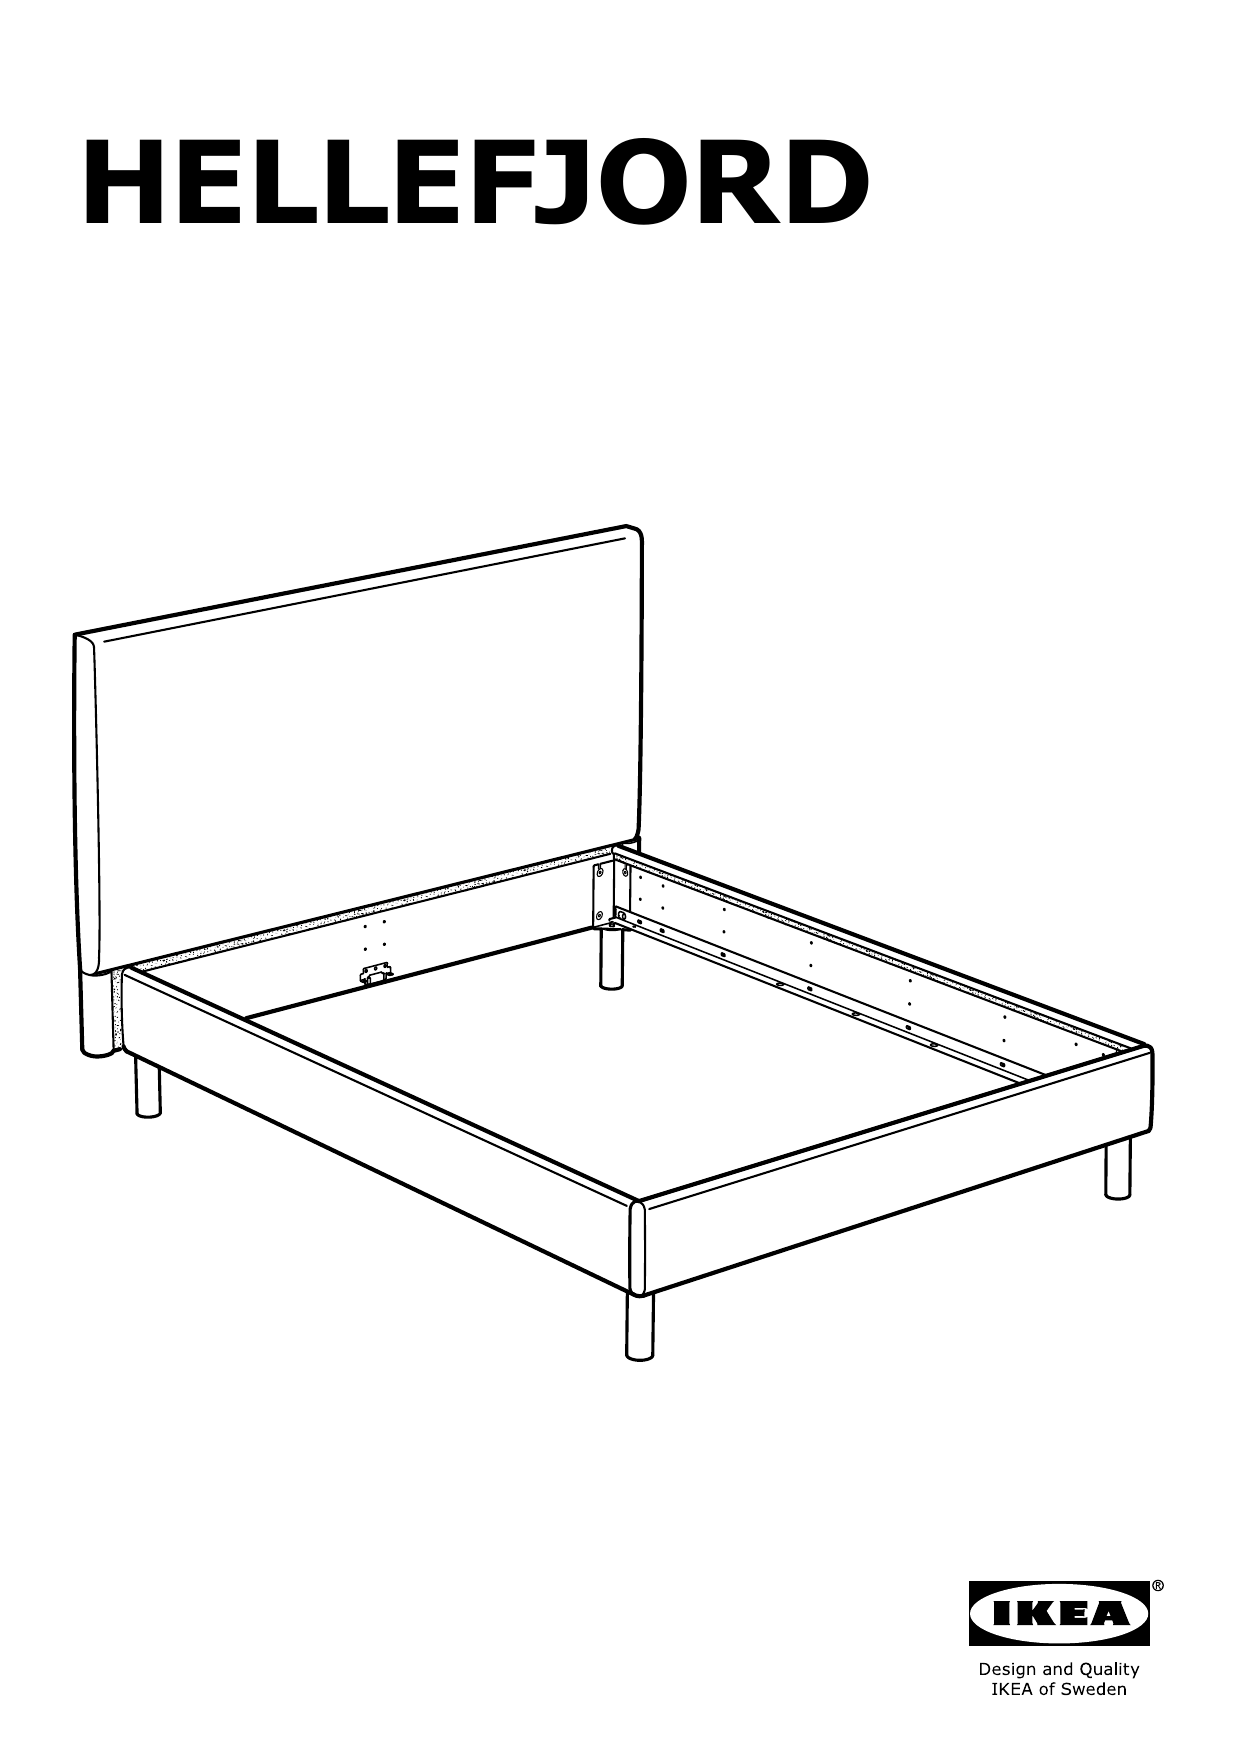 IKEA TOMREFJORD Bed frame Assembly Instruction